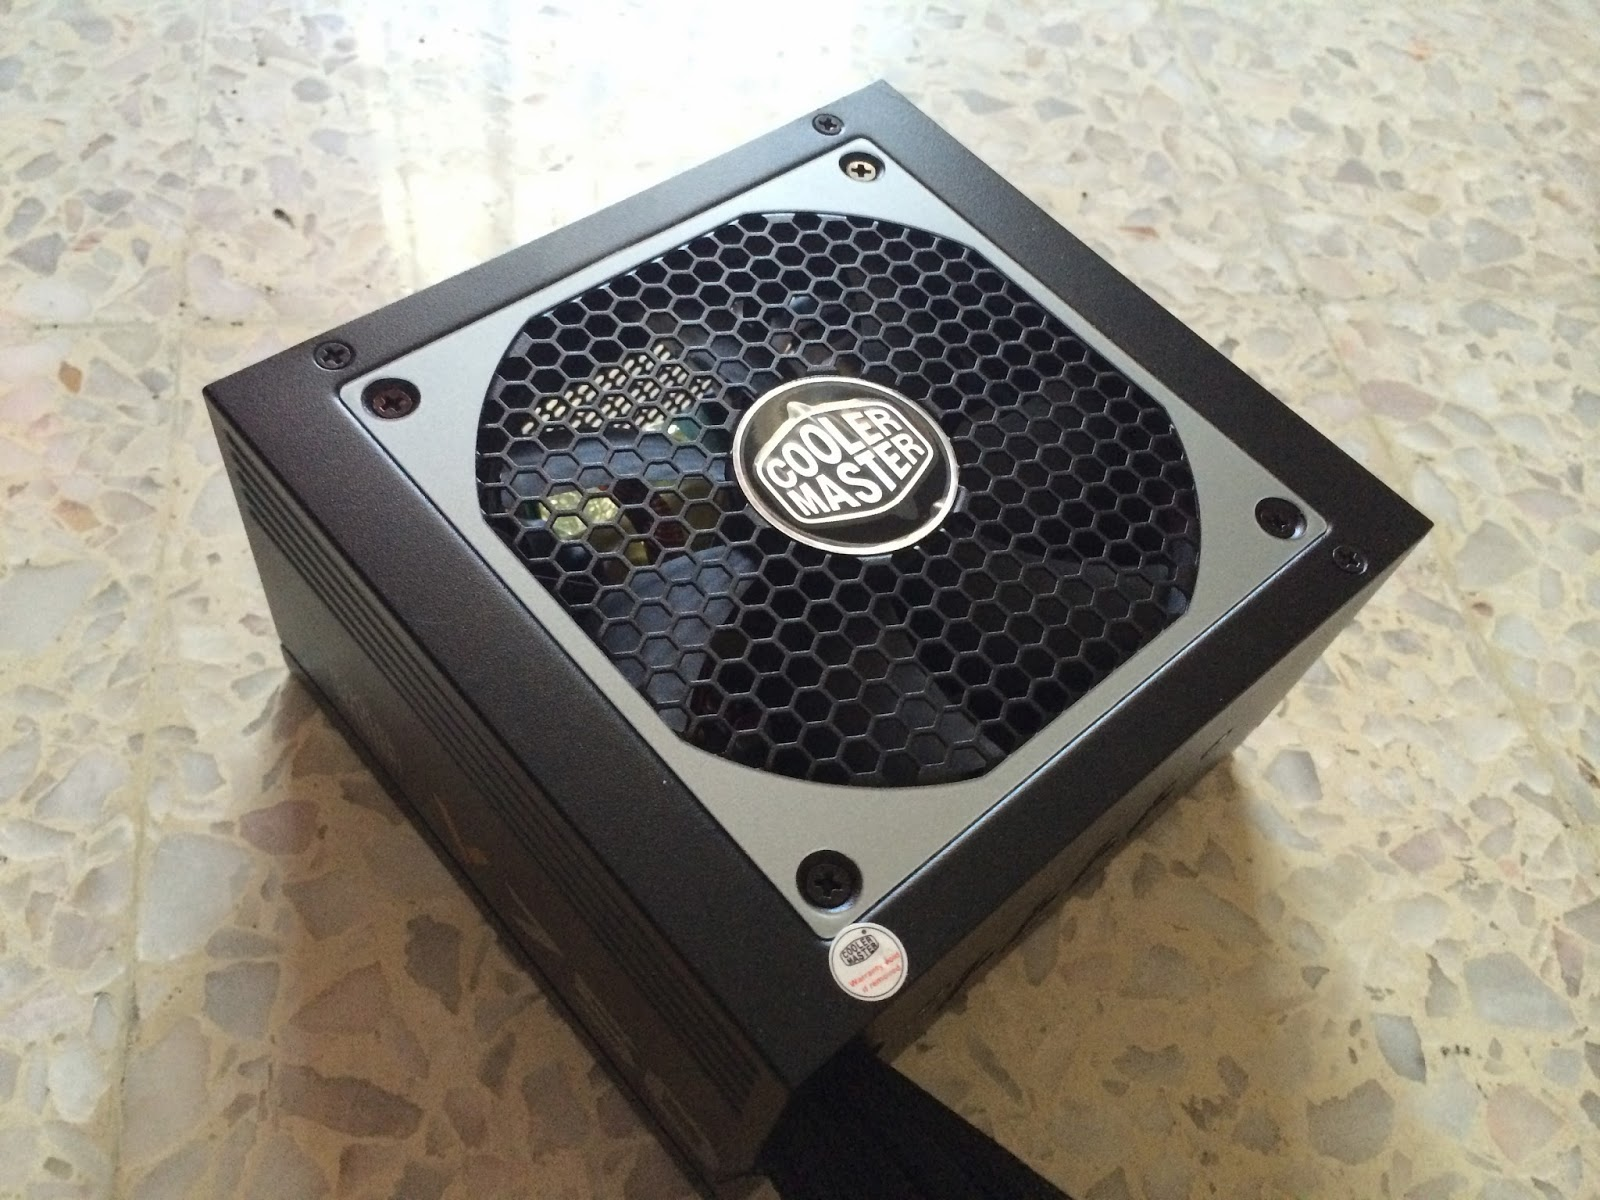 Cooler Master V750S Power Supply Unboxing & Overview 23